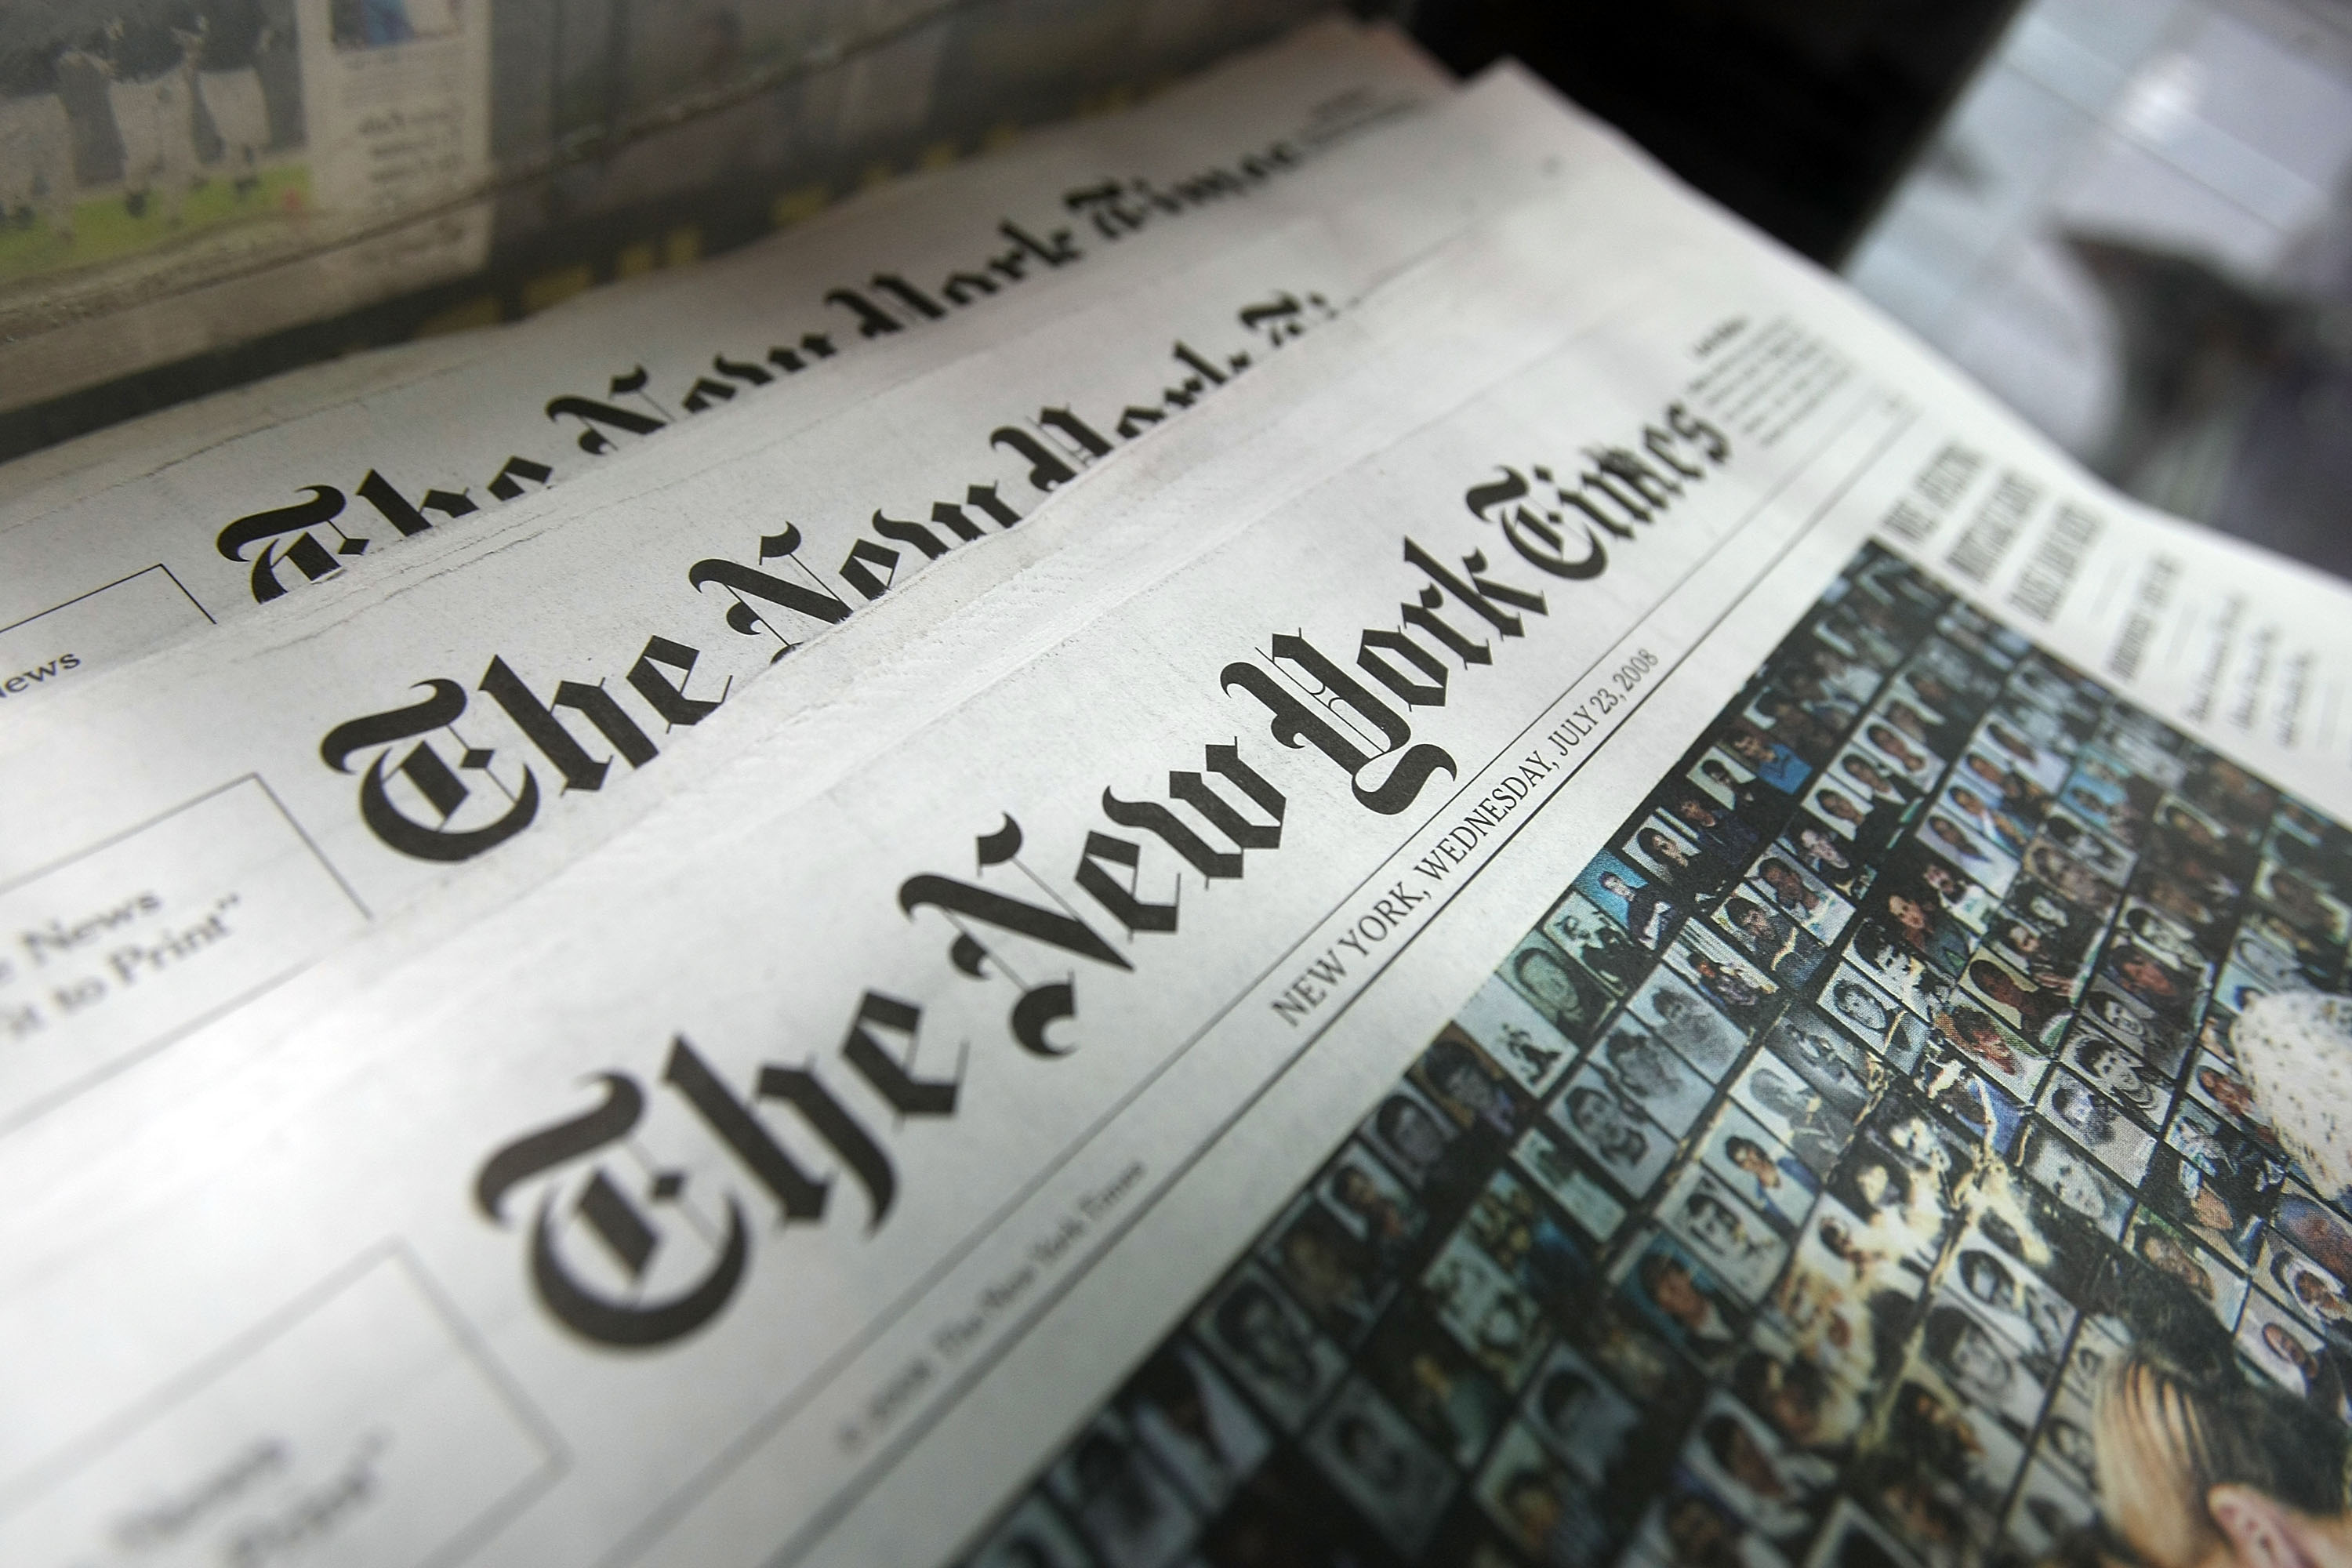 The New York Times launches NYT Opinion digital subscription and iPhone app for $6 per month